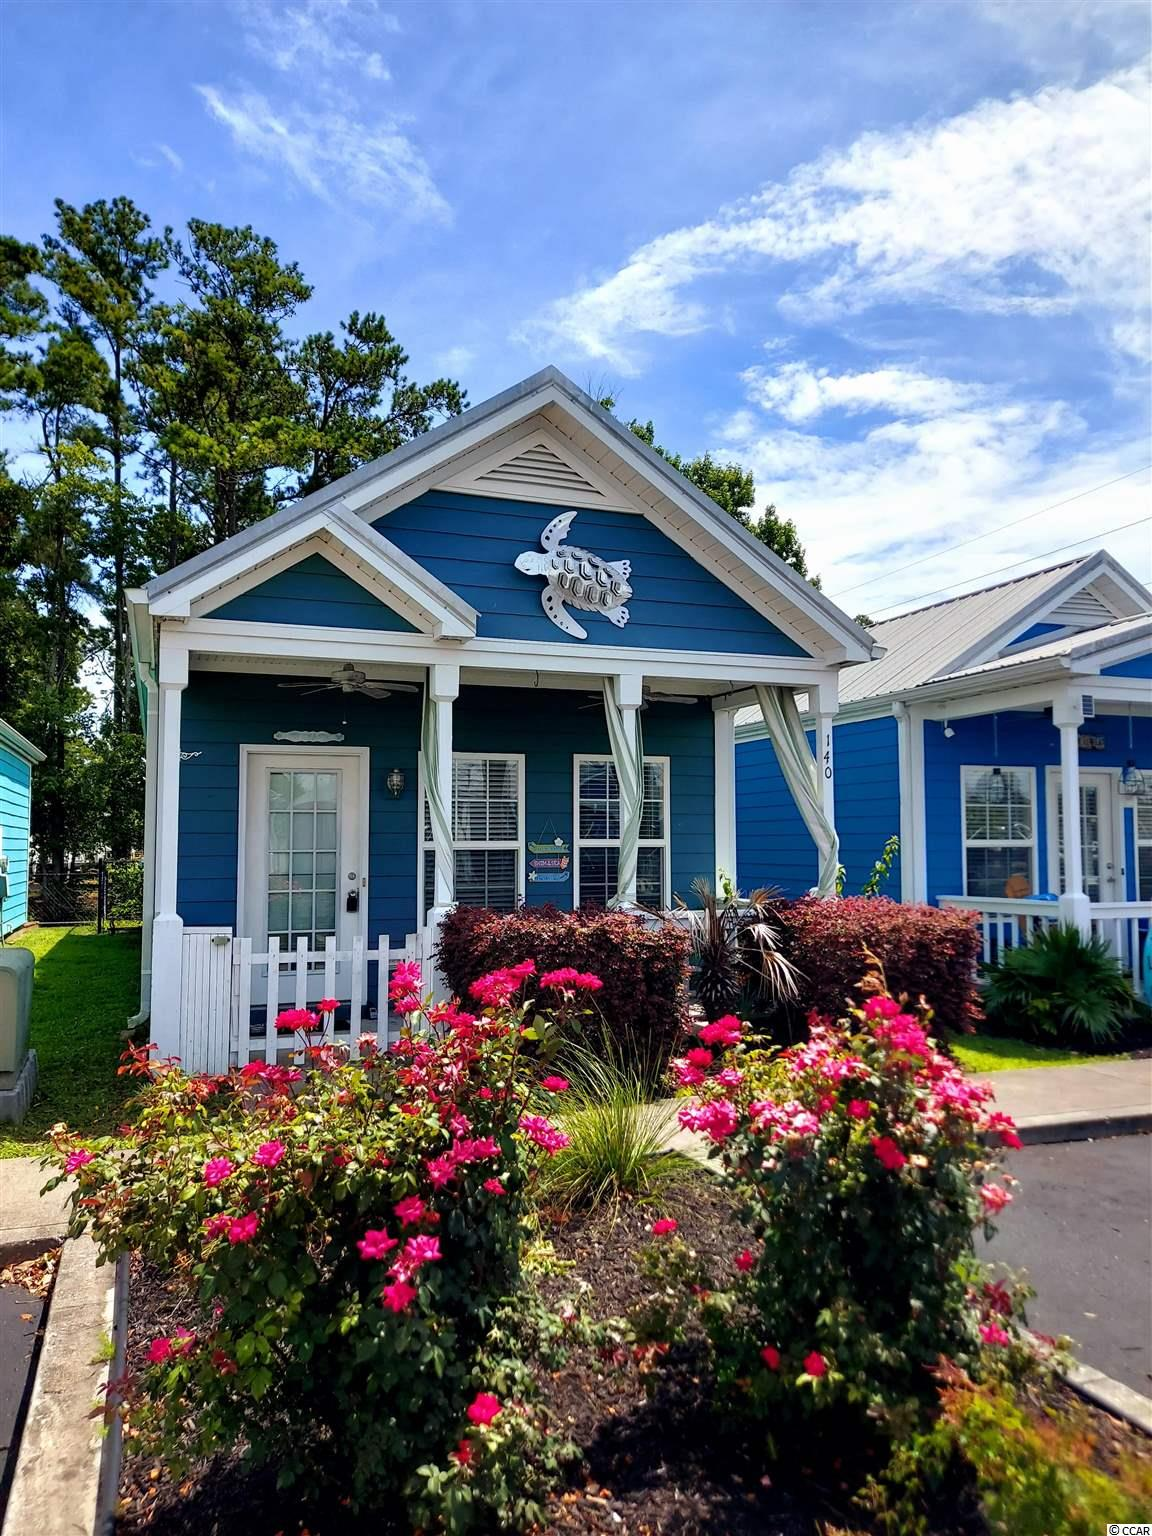 What a great little beach cottage! This perfect little beach getaway is one that isn't going going to break the bank. Extremely close proximity to Surfside/Garden City Beach. Short golf cart ride away. Addison Cottages features a community pool and a private right-of-way off the Garden City Connector. Hardie plank siding and a metal roof. Inside is beach decorated, but, waiting on your own personal design. Come take a look before this one is gone!